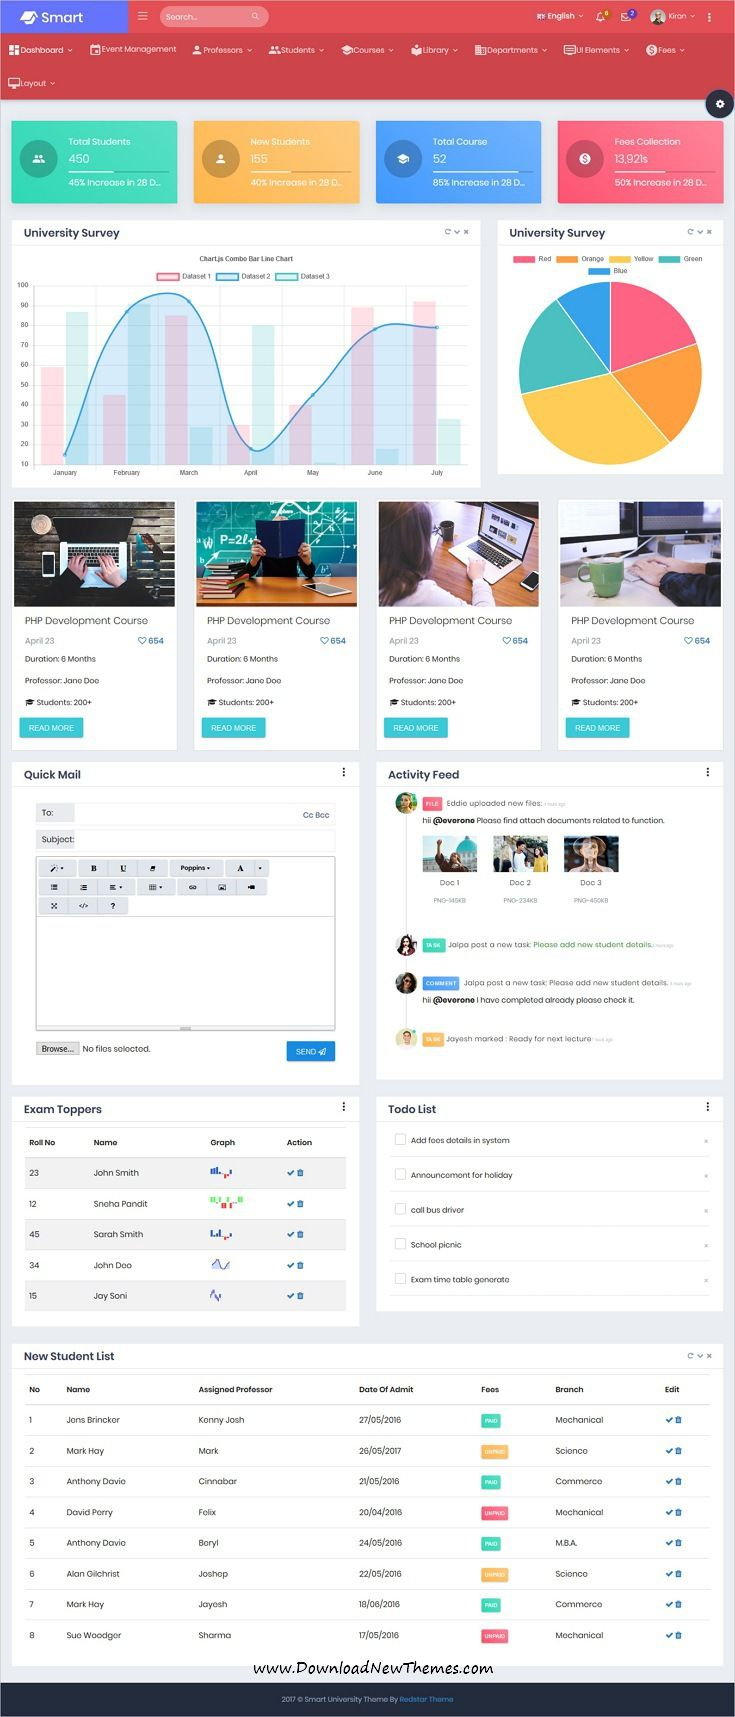 Smart - Bootstrap 4 Admin Dashboard Template for University, School ...